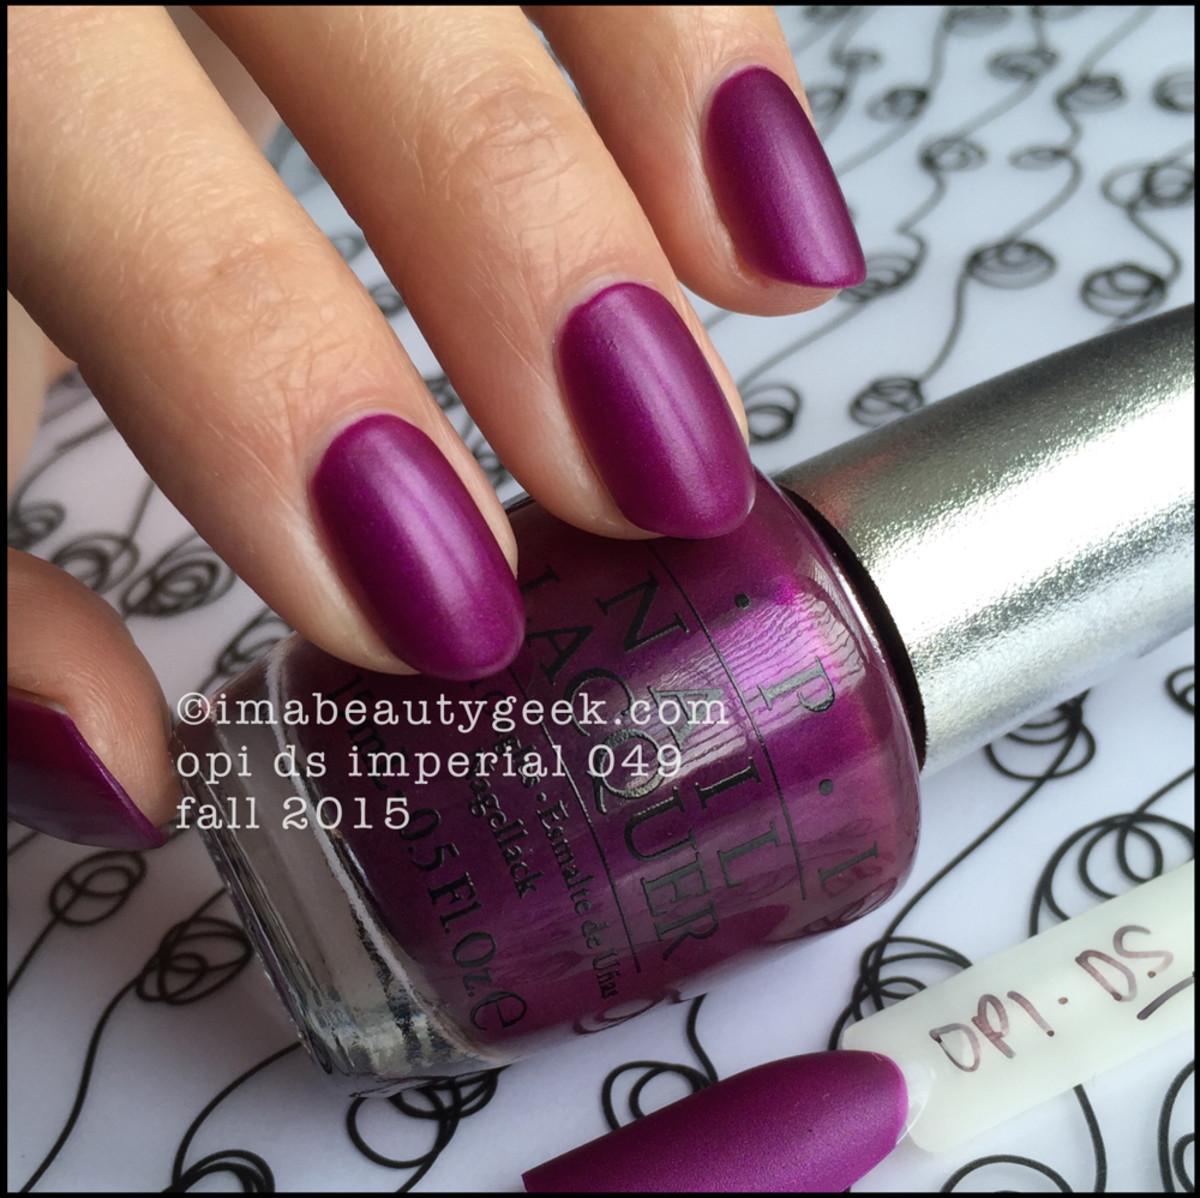 OPI DS Imperial 049_OPI DS 2015 low light